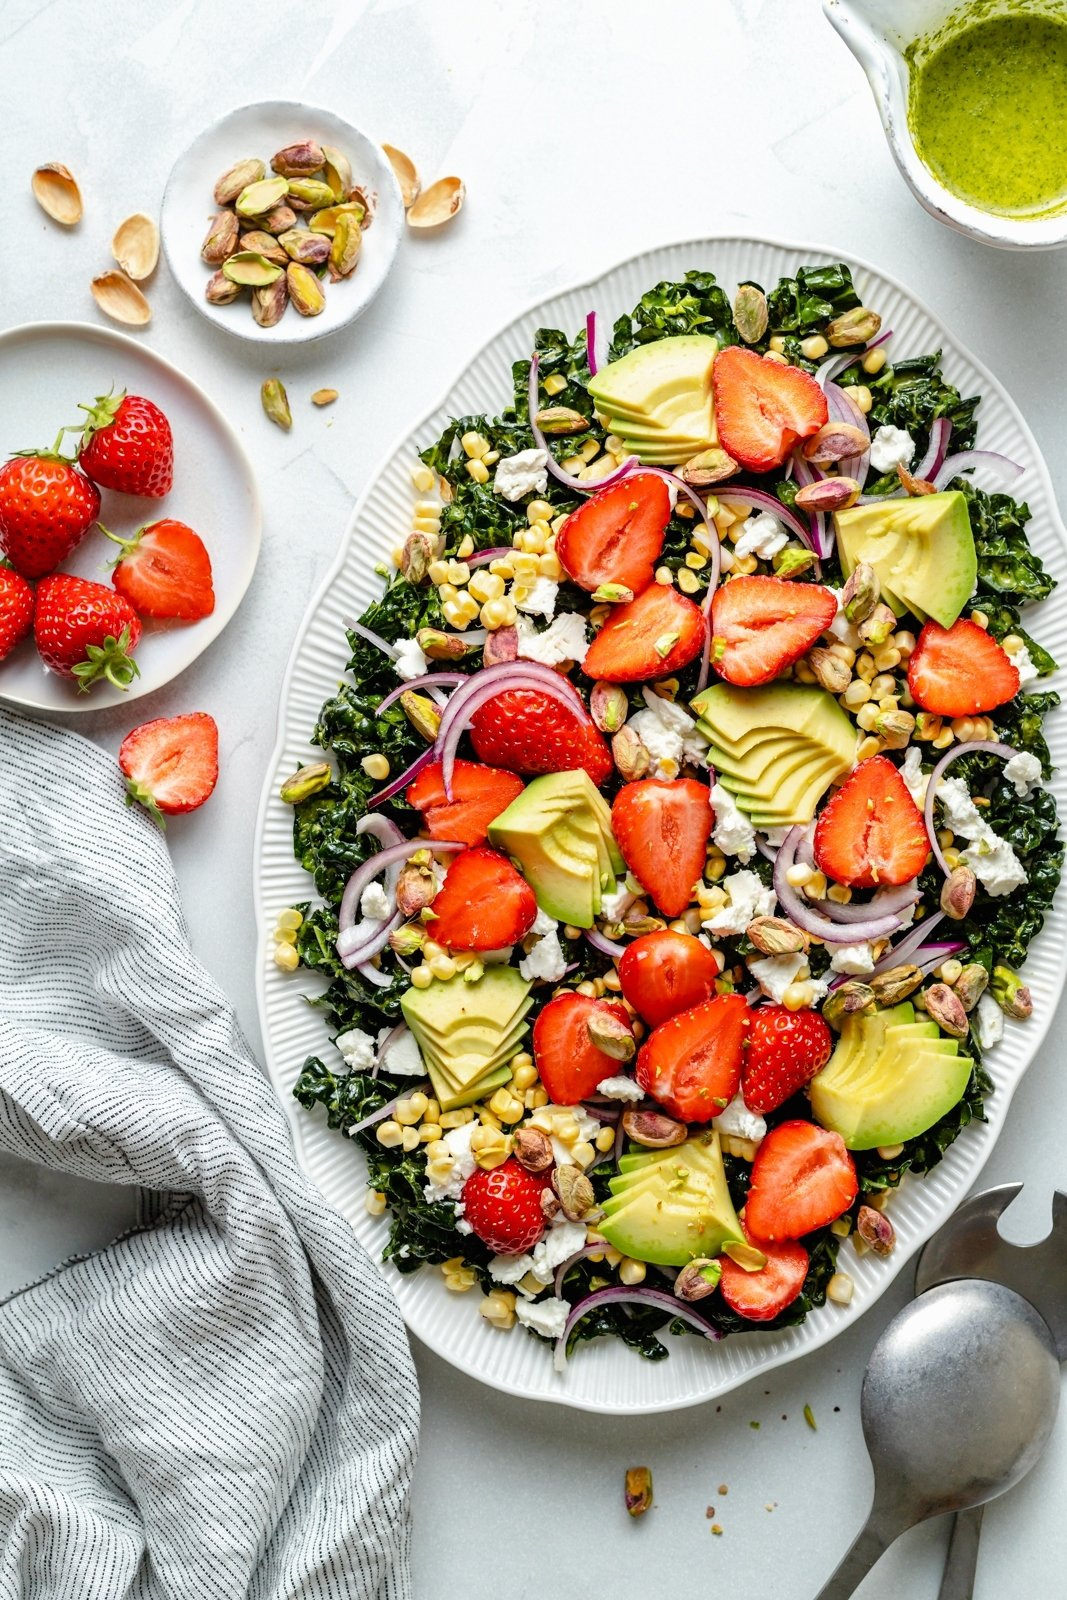 chopped kale salad with strawberries and avocado on a platter